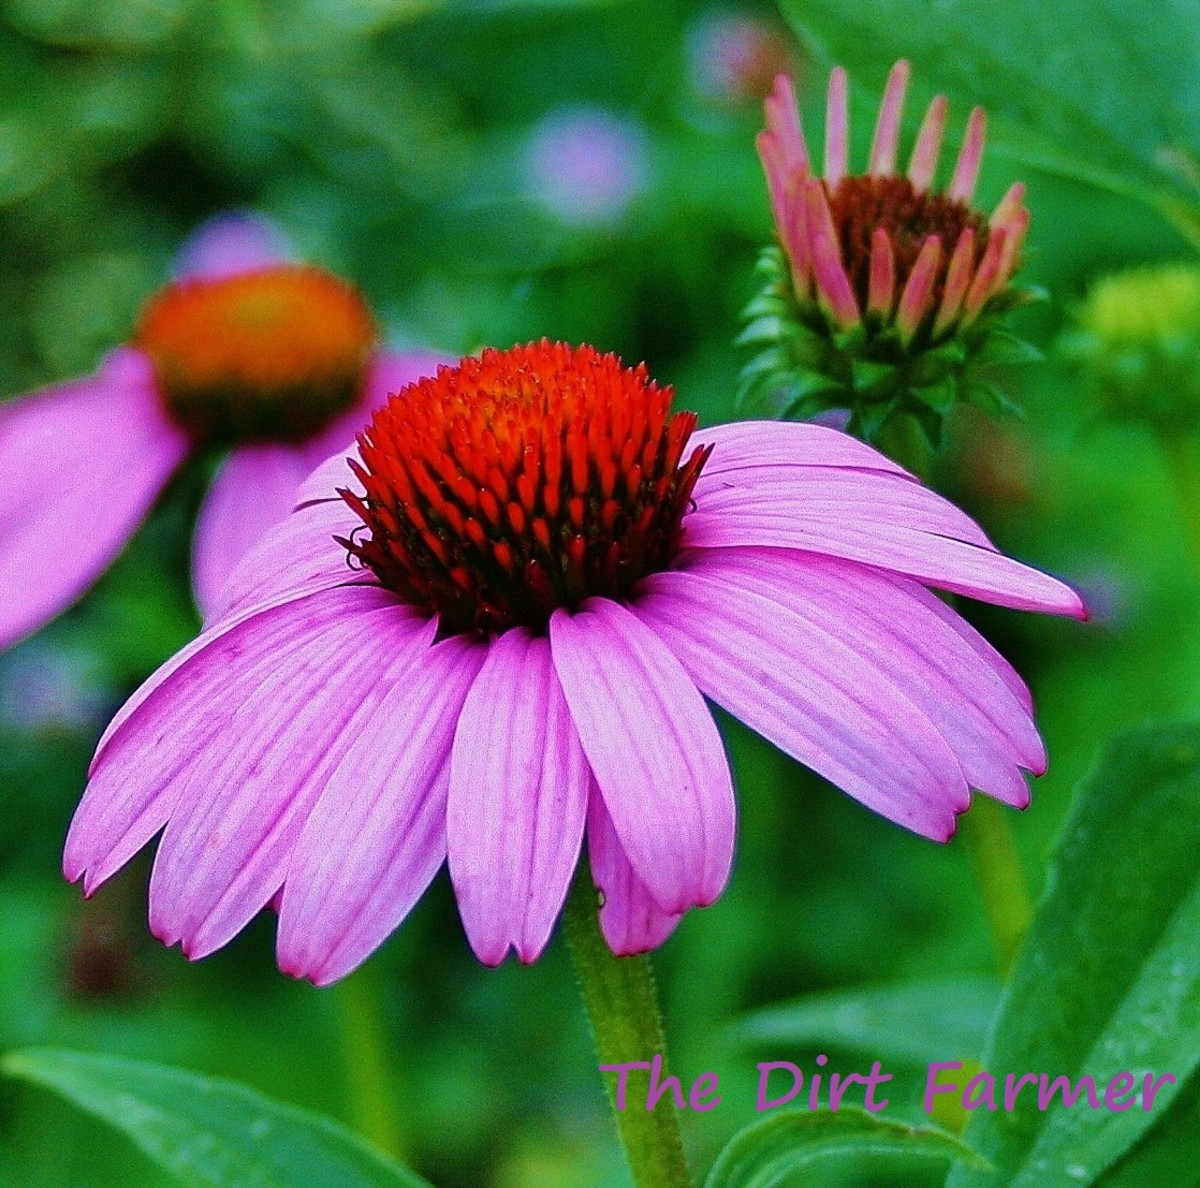 Purple coneflower produces cheery summer flowers that look as lovely in a field or flowerbed as they do in a vase.